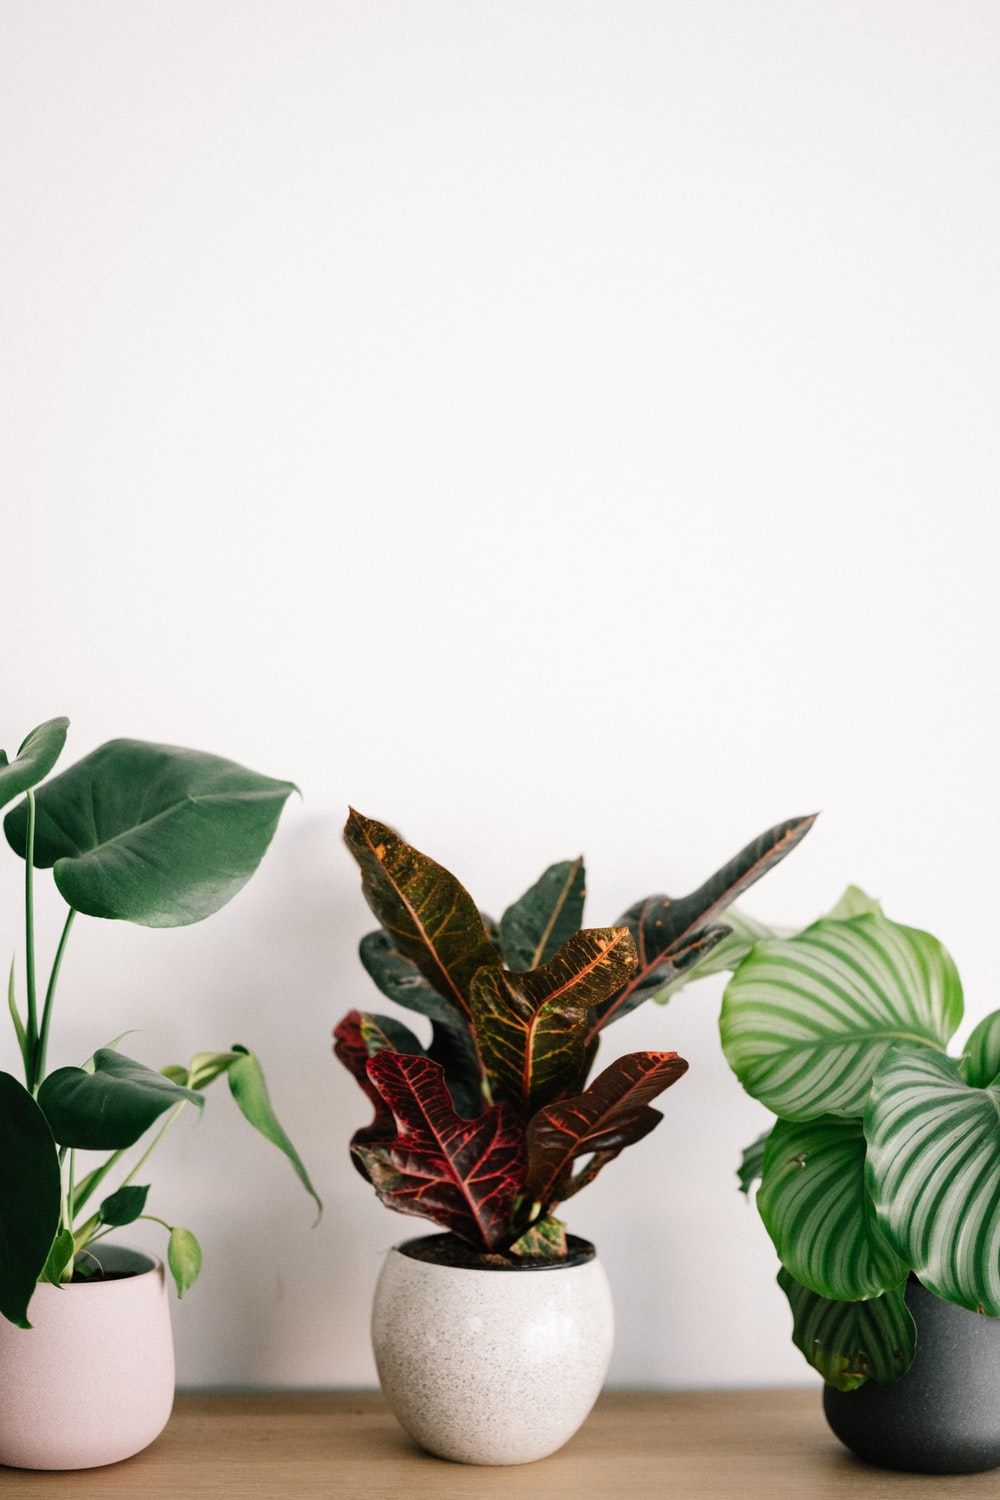 red and green leaves on white background, houseplants